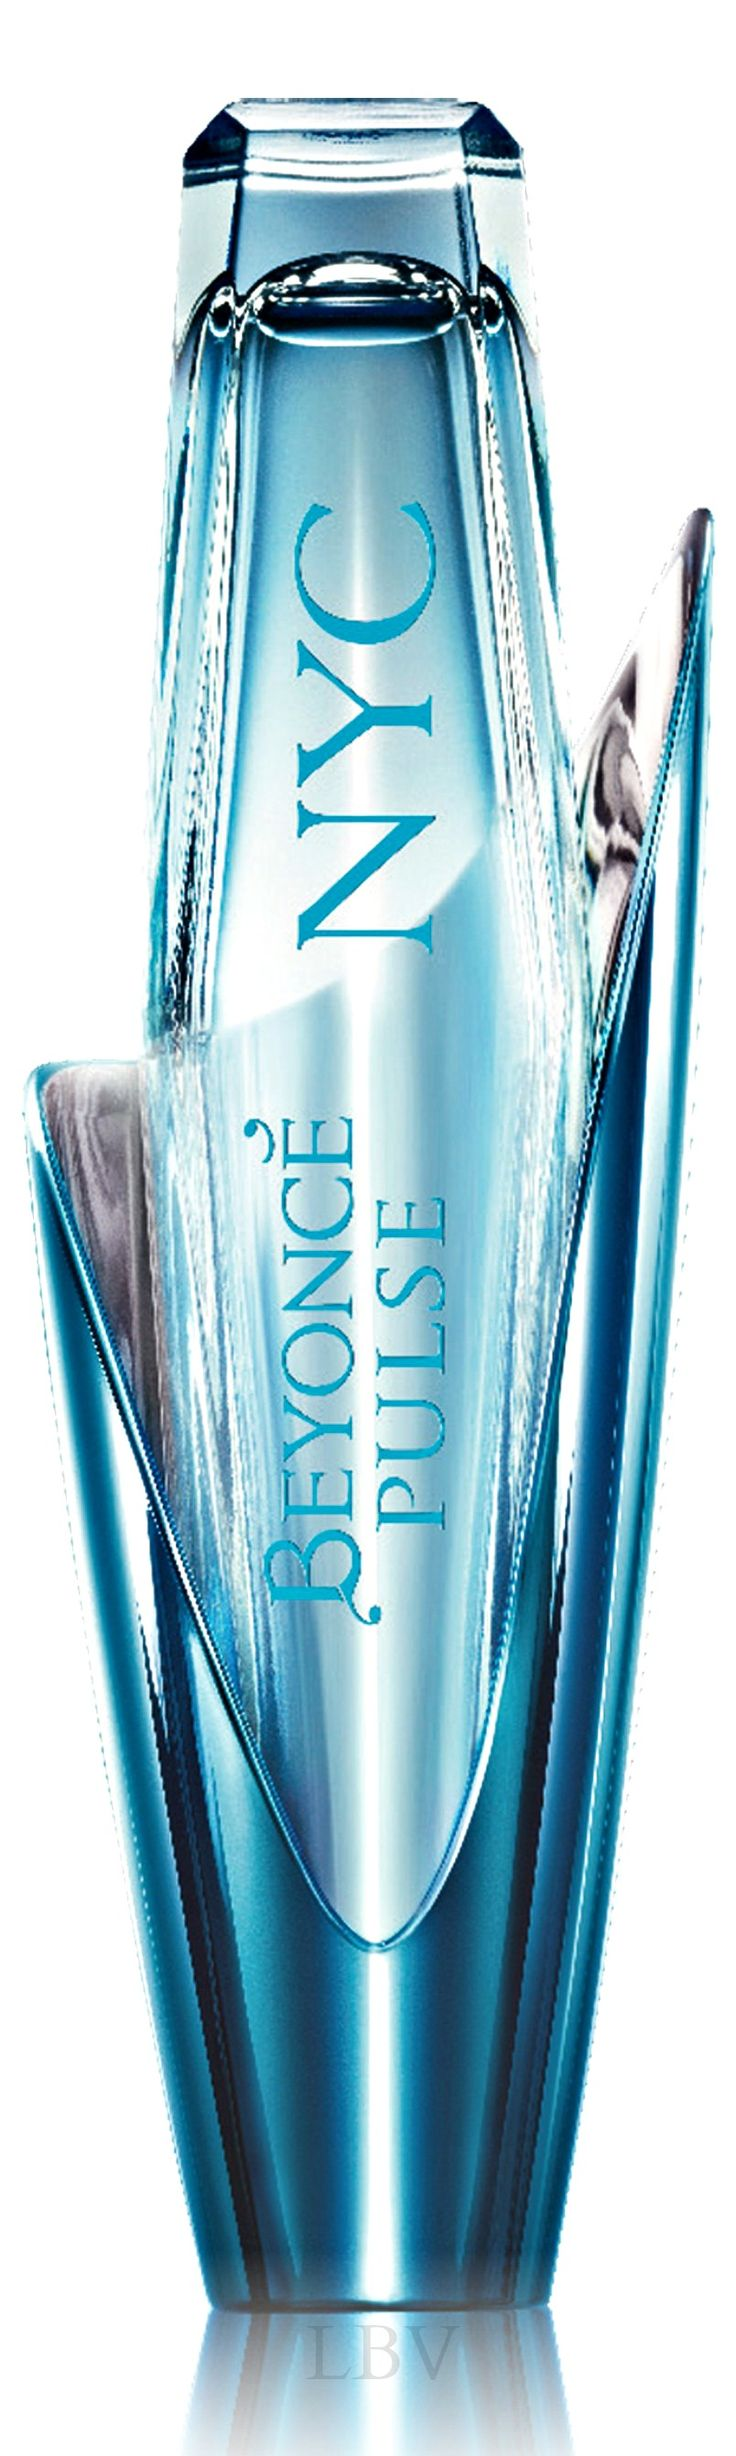 Beyonce Knowles has launched her new fragrance called Pulse | LBV S14 ♥✤